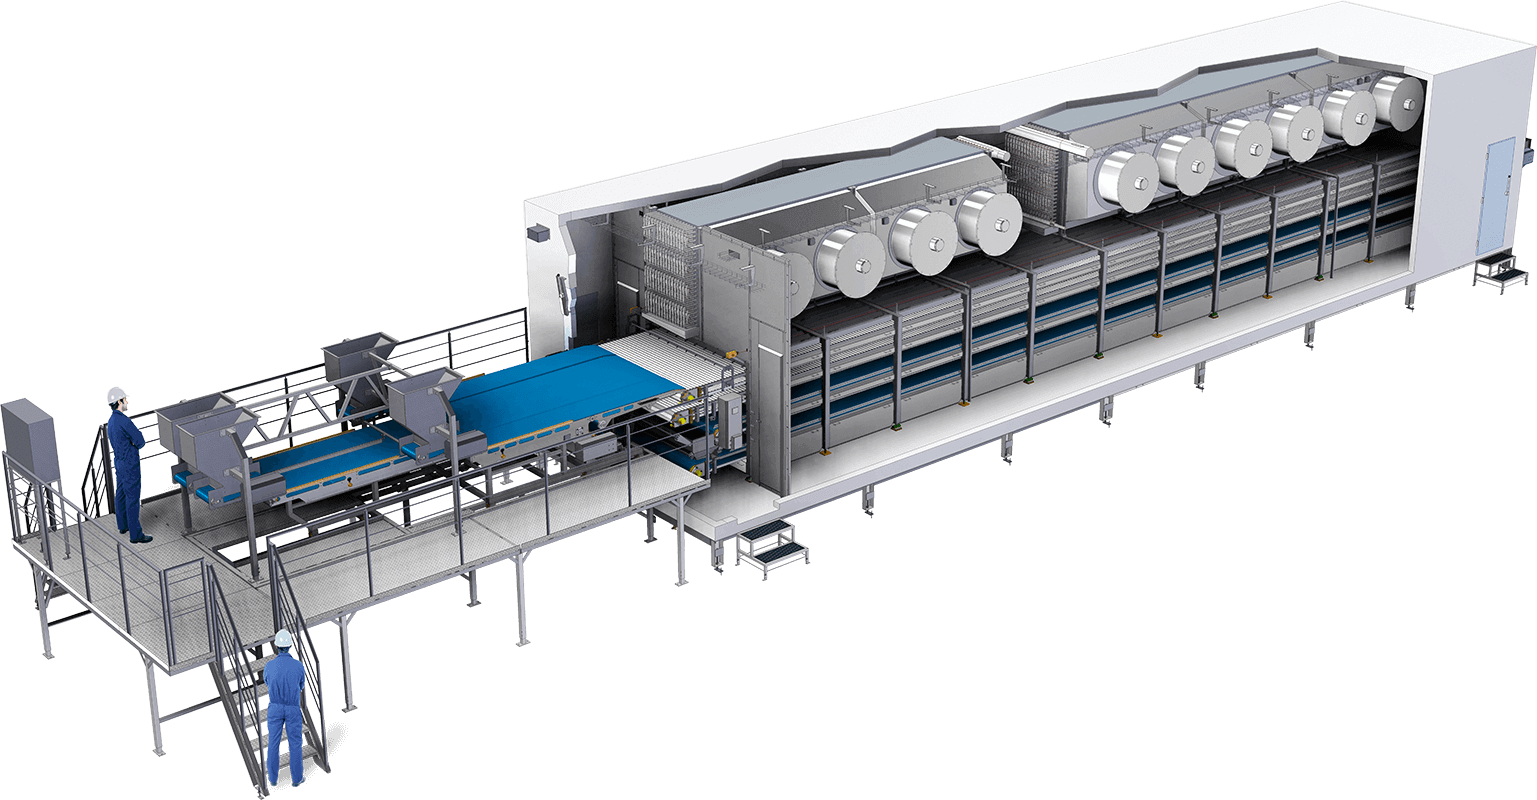 Ideal for freezing fish or meats for optimal yield, quality and shape. Multiple levels of conveyors, runs throughout the week without complete defrosting.